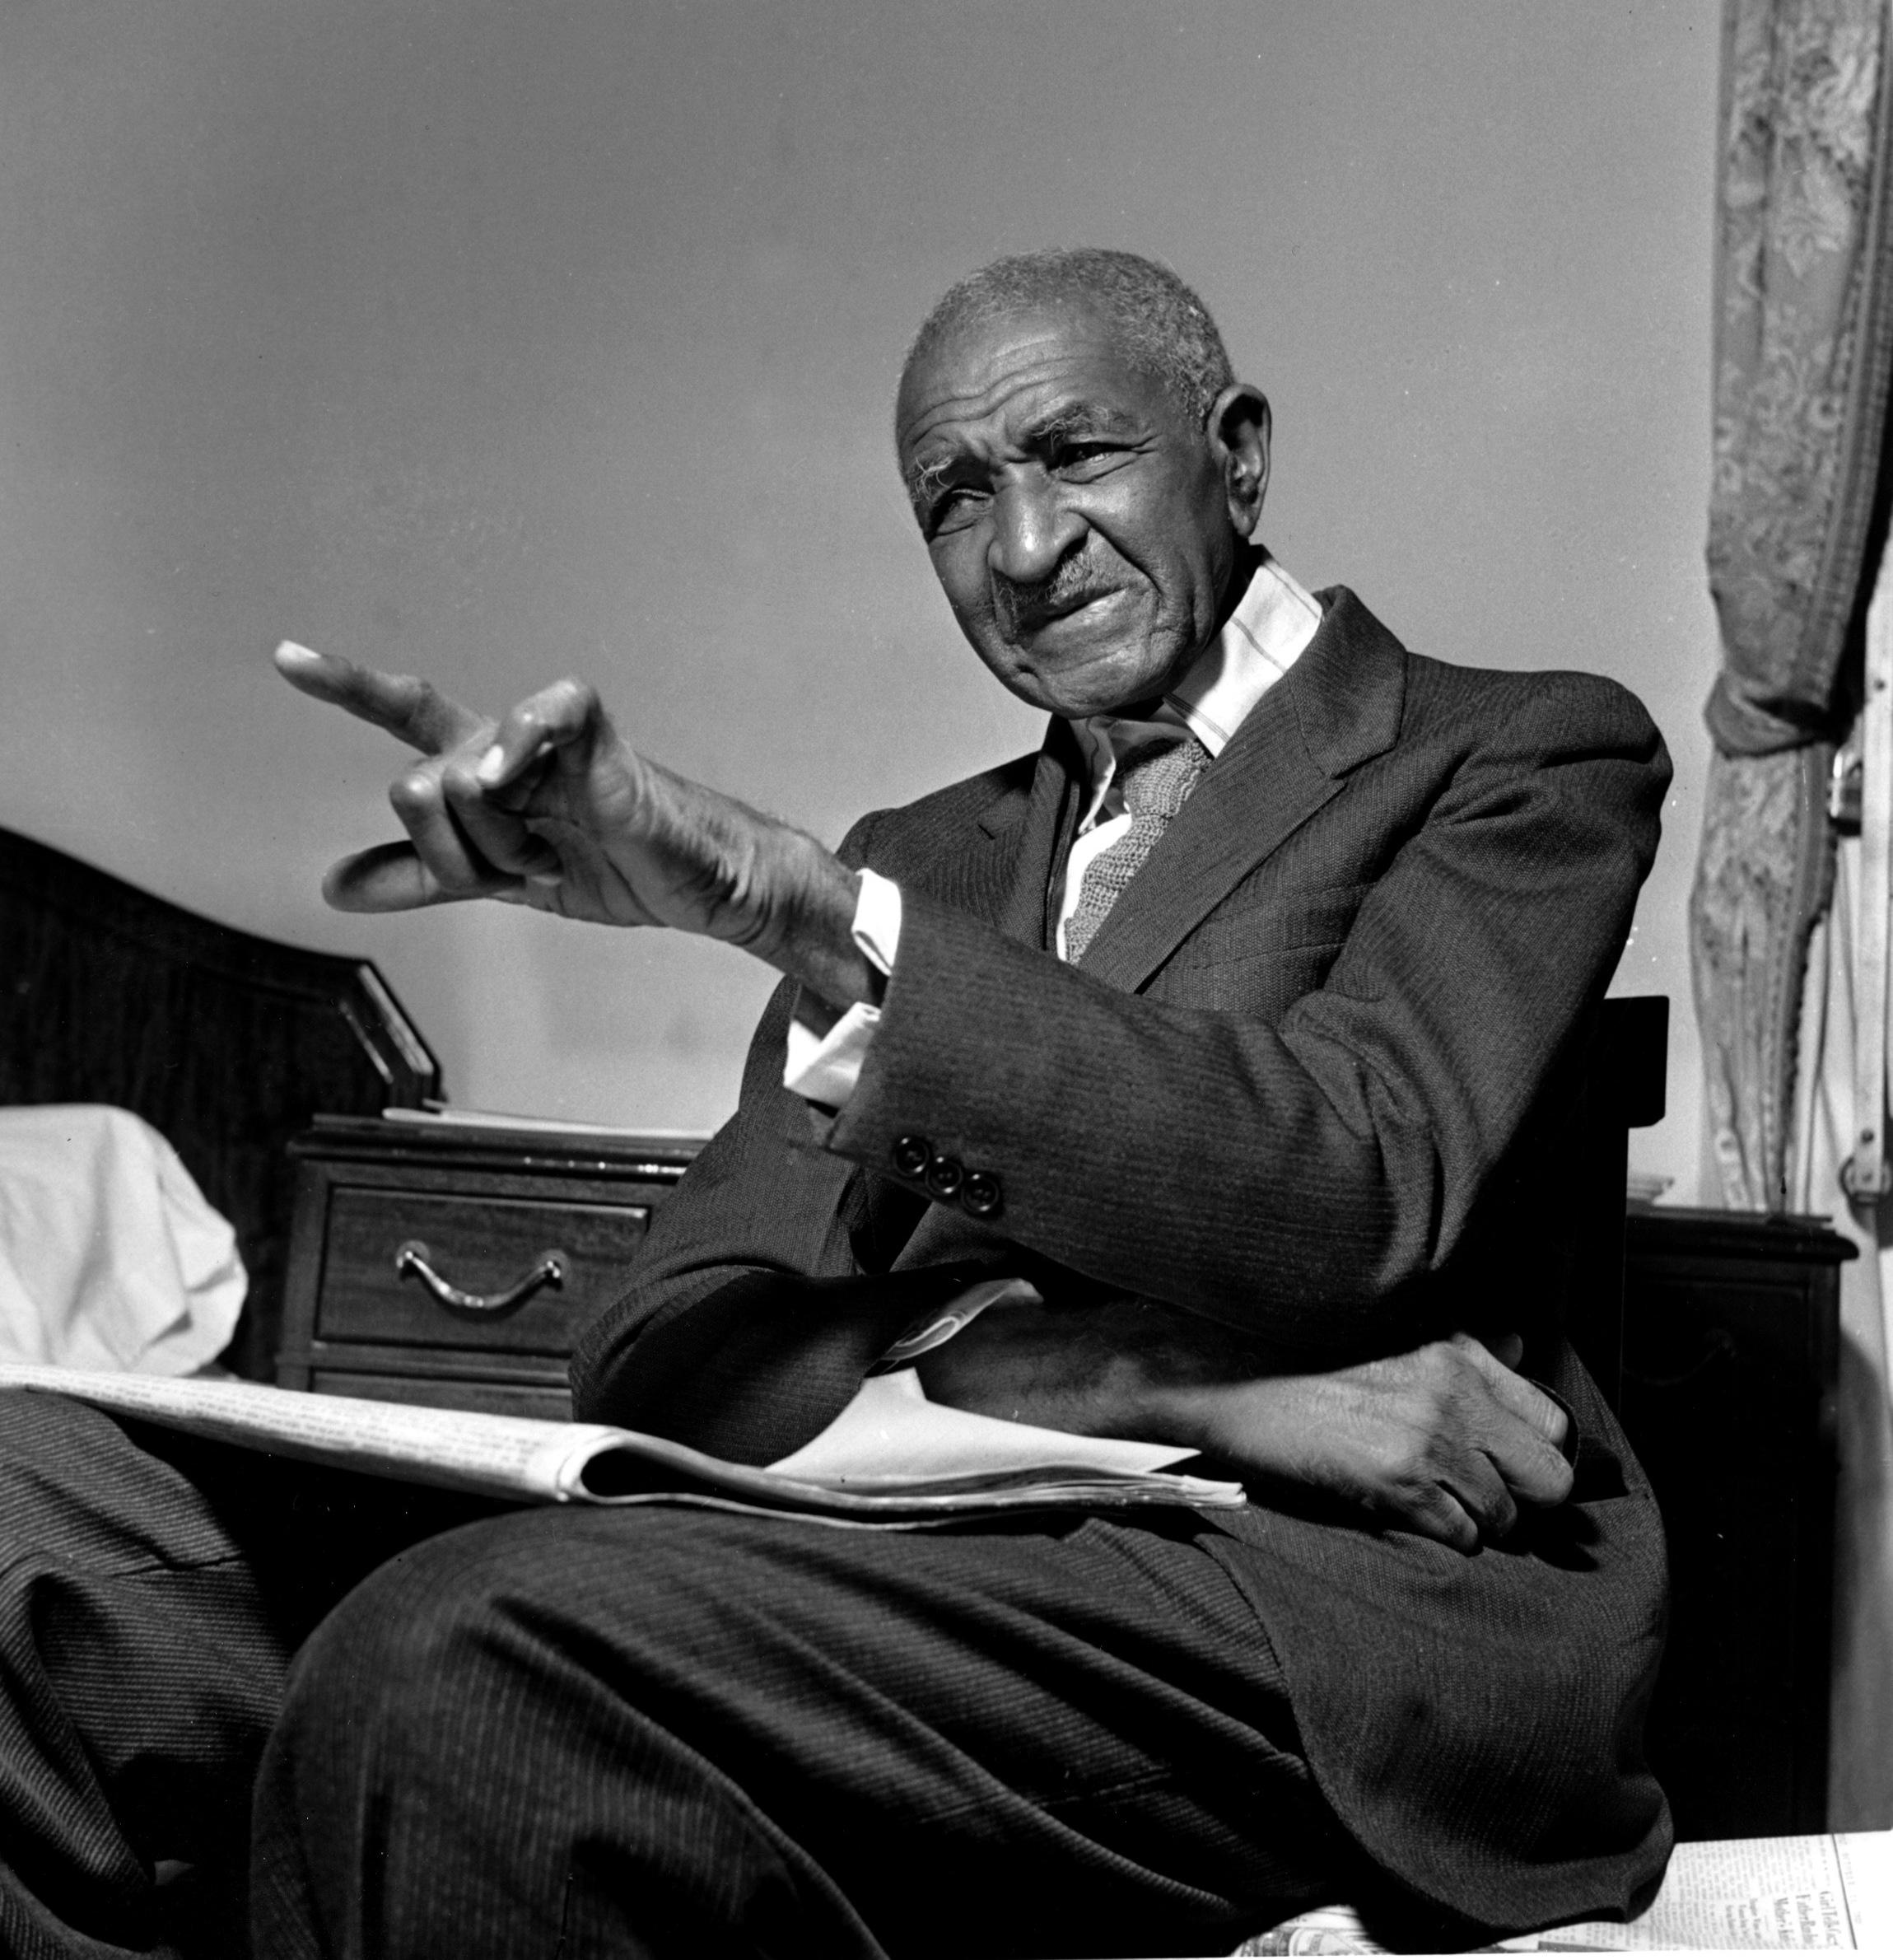 washington carver The legacy of dr george washington carver dr george washington carver - 1943 research scientist extraordinaire, inventor, man of faith, educator and humanitarian.